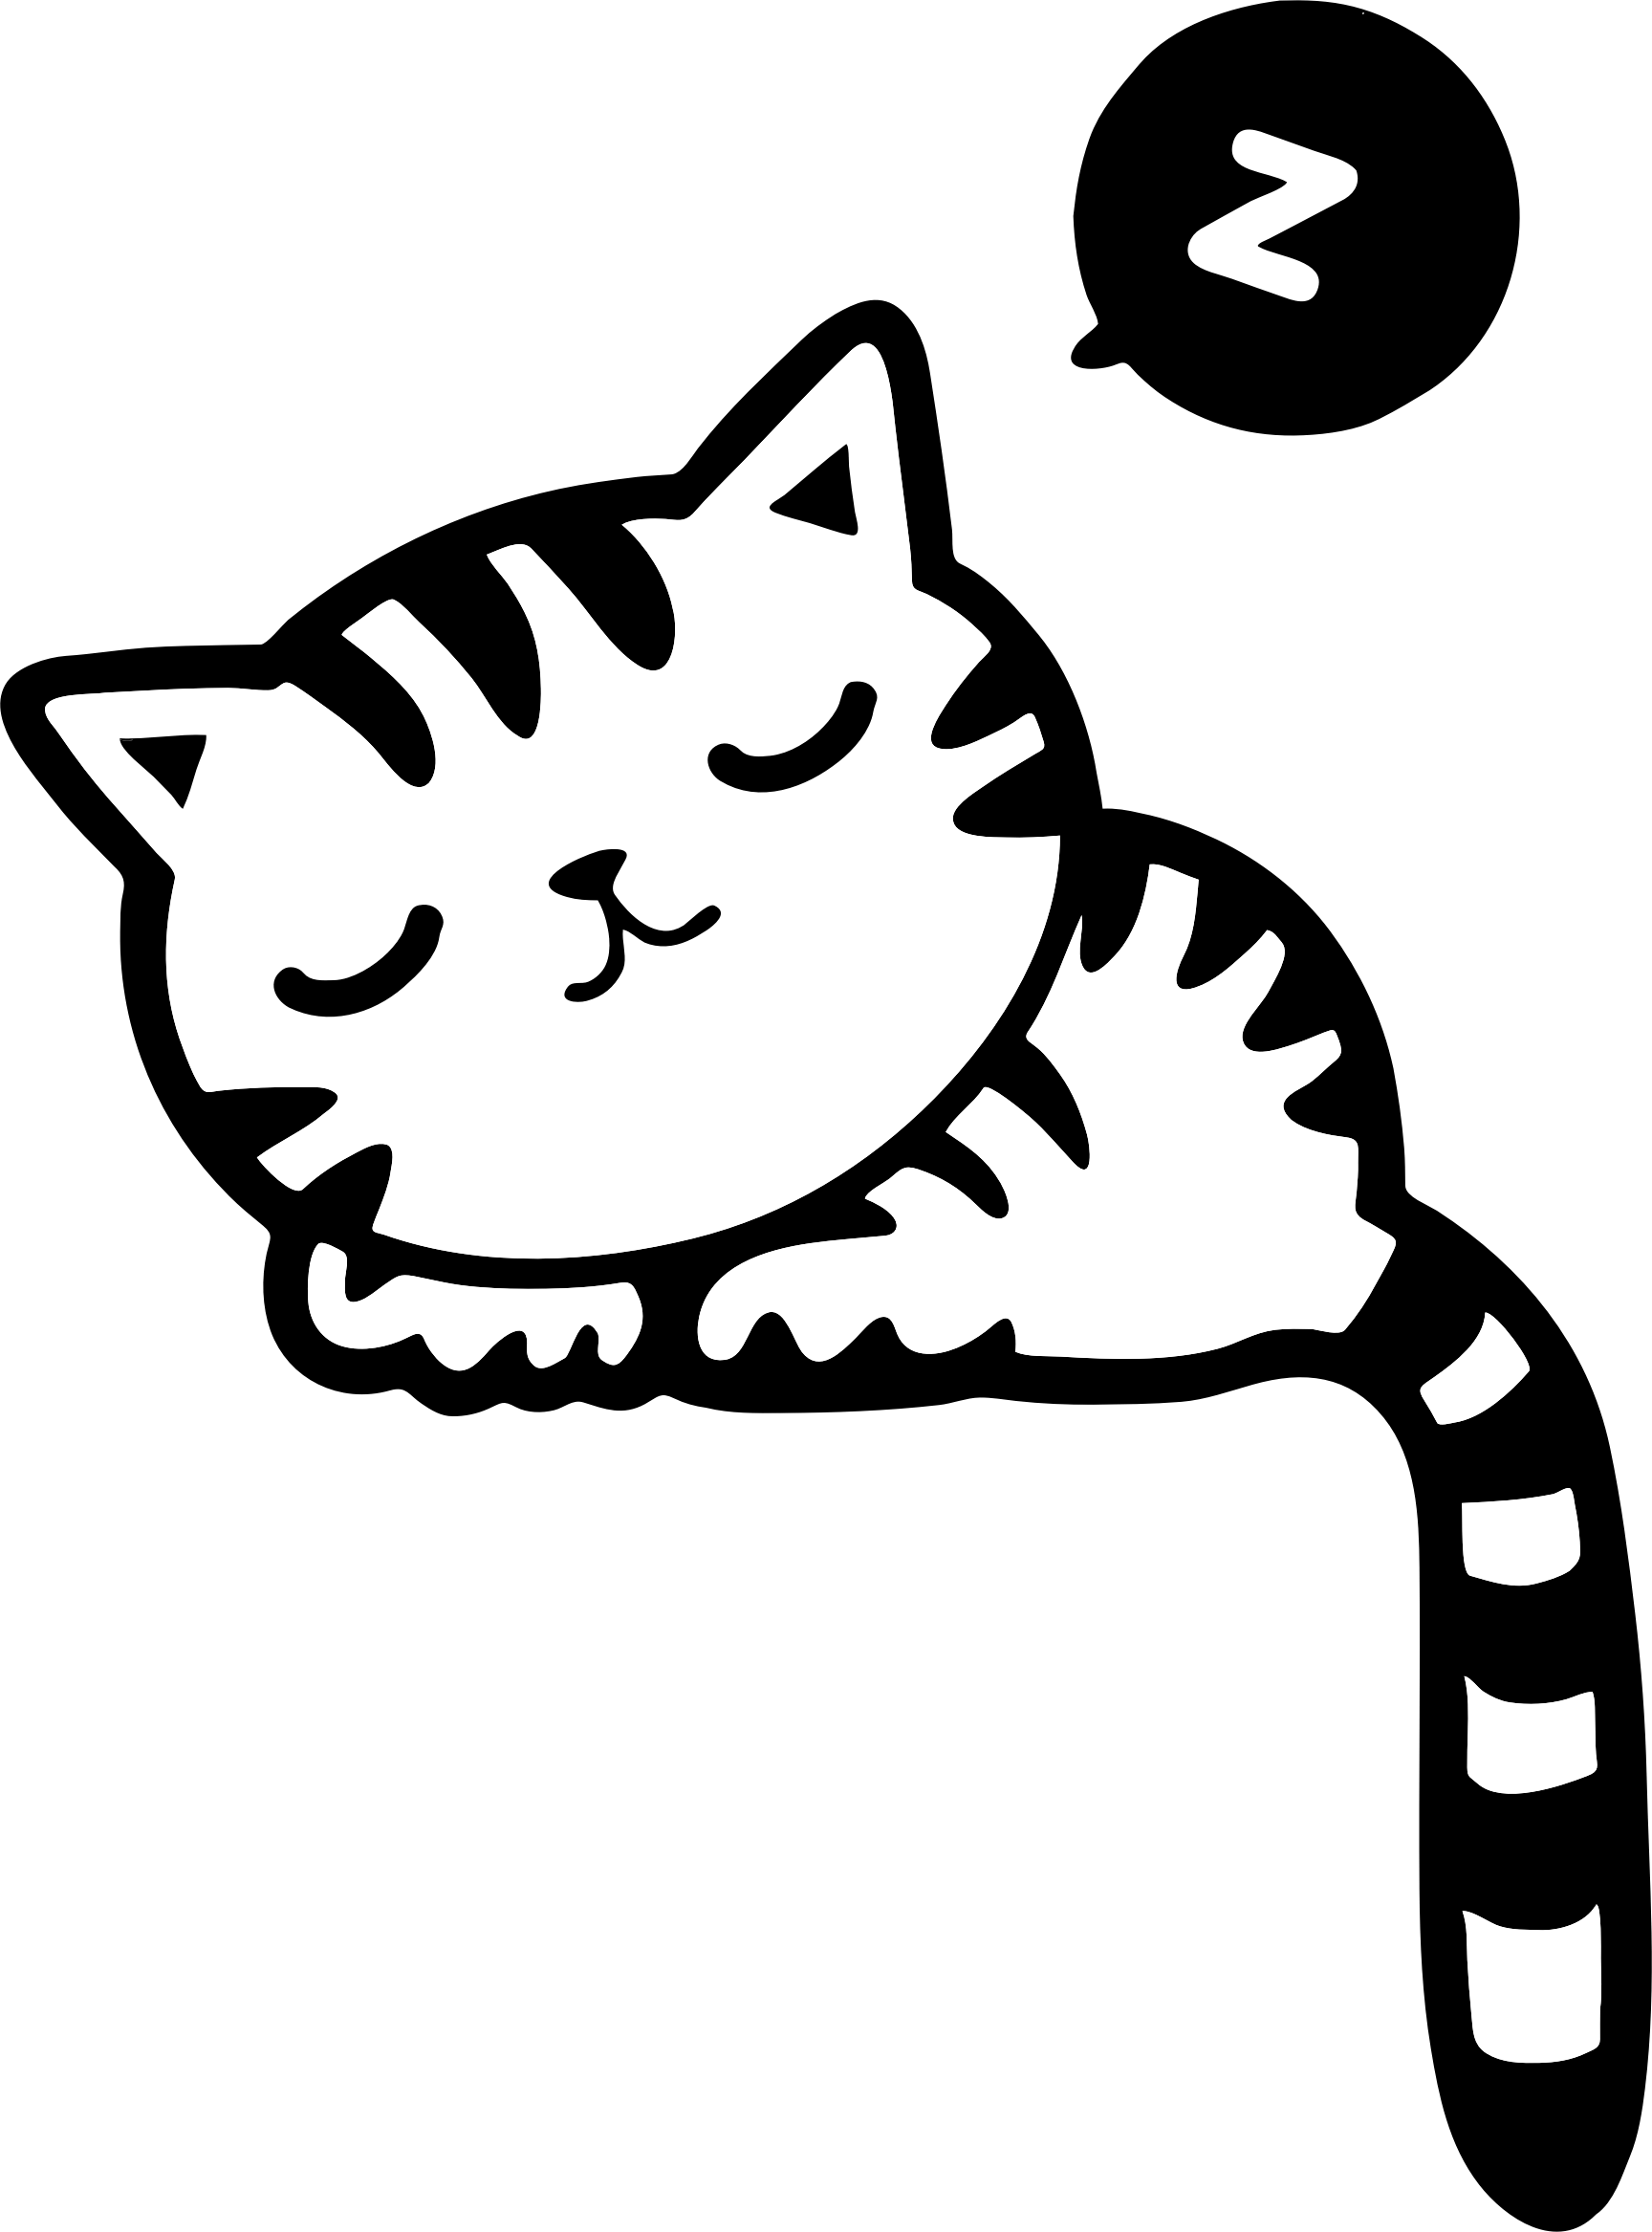 Sleeping Cat Clipart Black And White 20 Free Cliparts